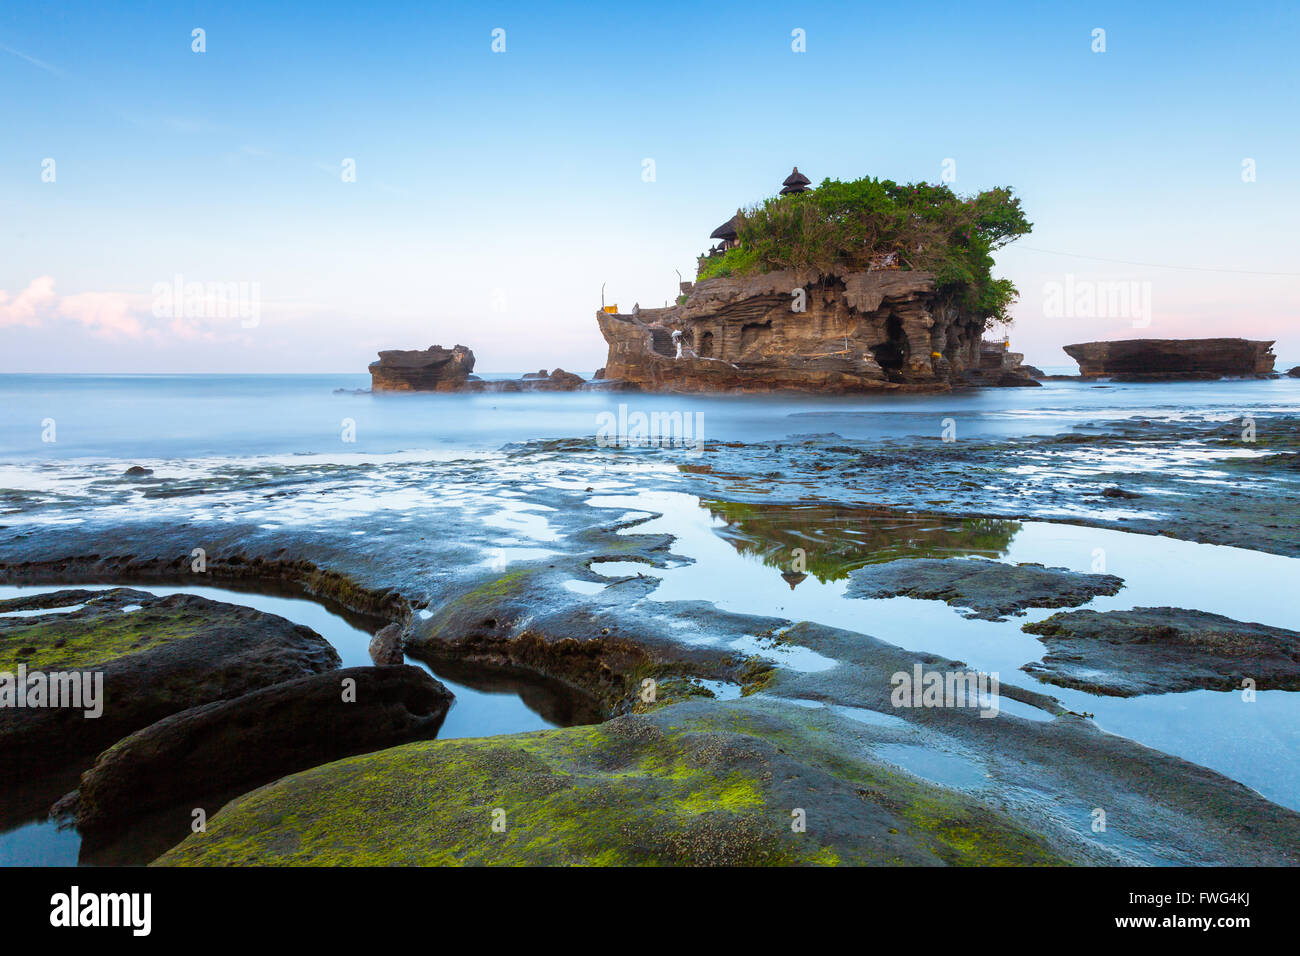 Pura Tanah Lot in the morning, famous ocean temple in Bali, Indonesia. - Stock Image